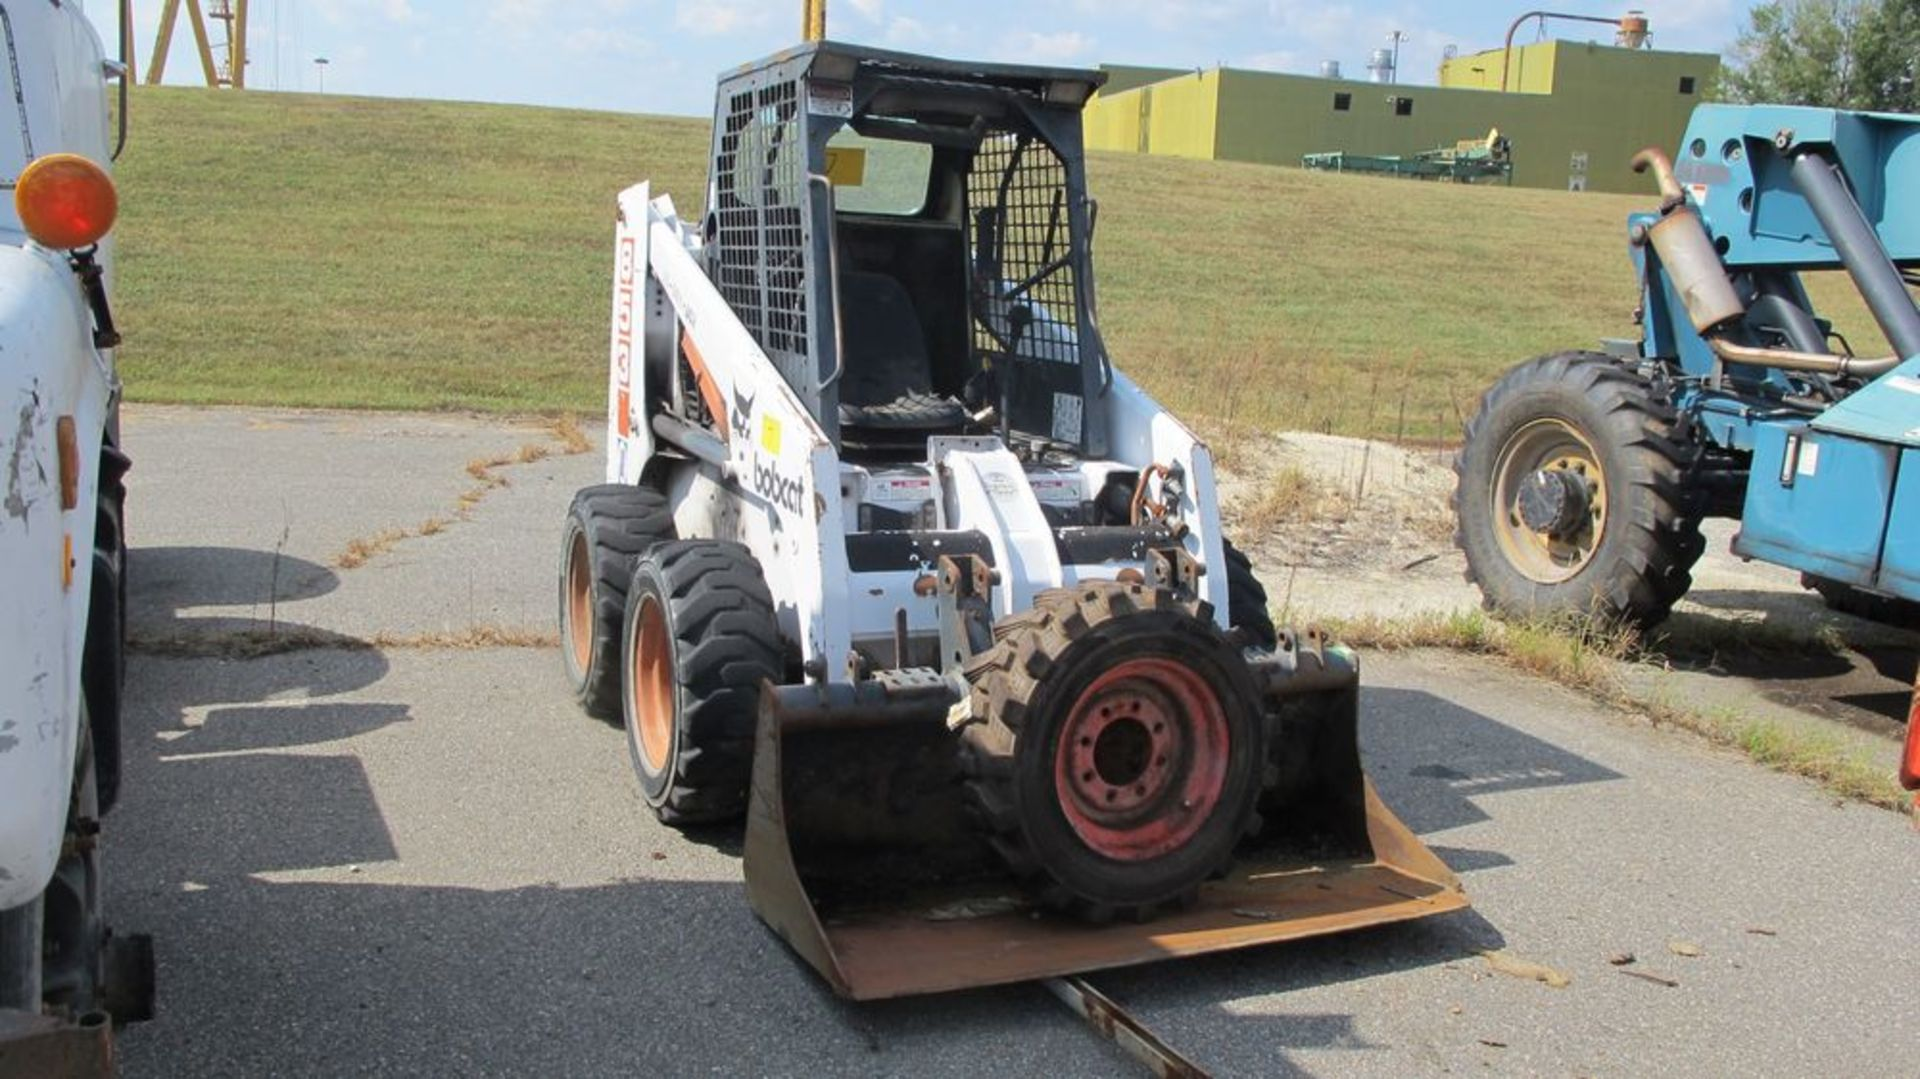 Lot 7 - BOBCAT 853 W/BUCKET ATTACHMENT (NEEDS REPAIR) (WAREHOUSE 30 - PARKING LOT)